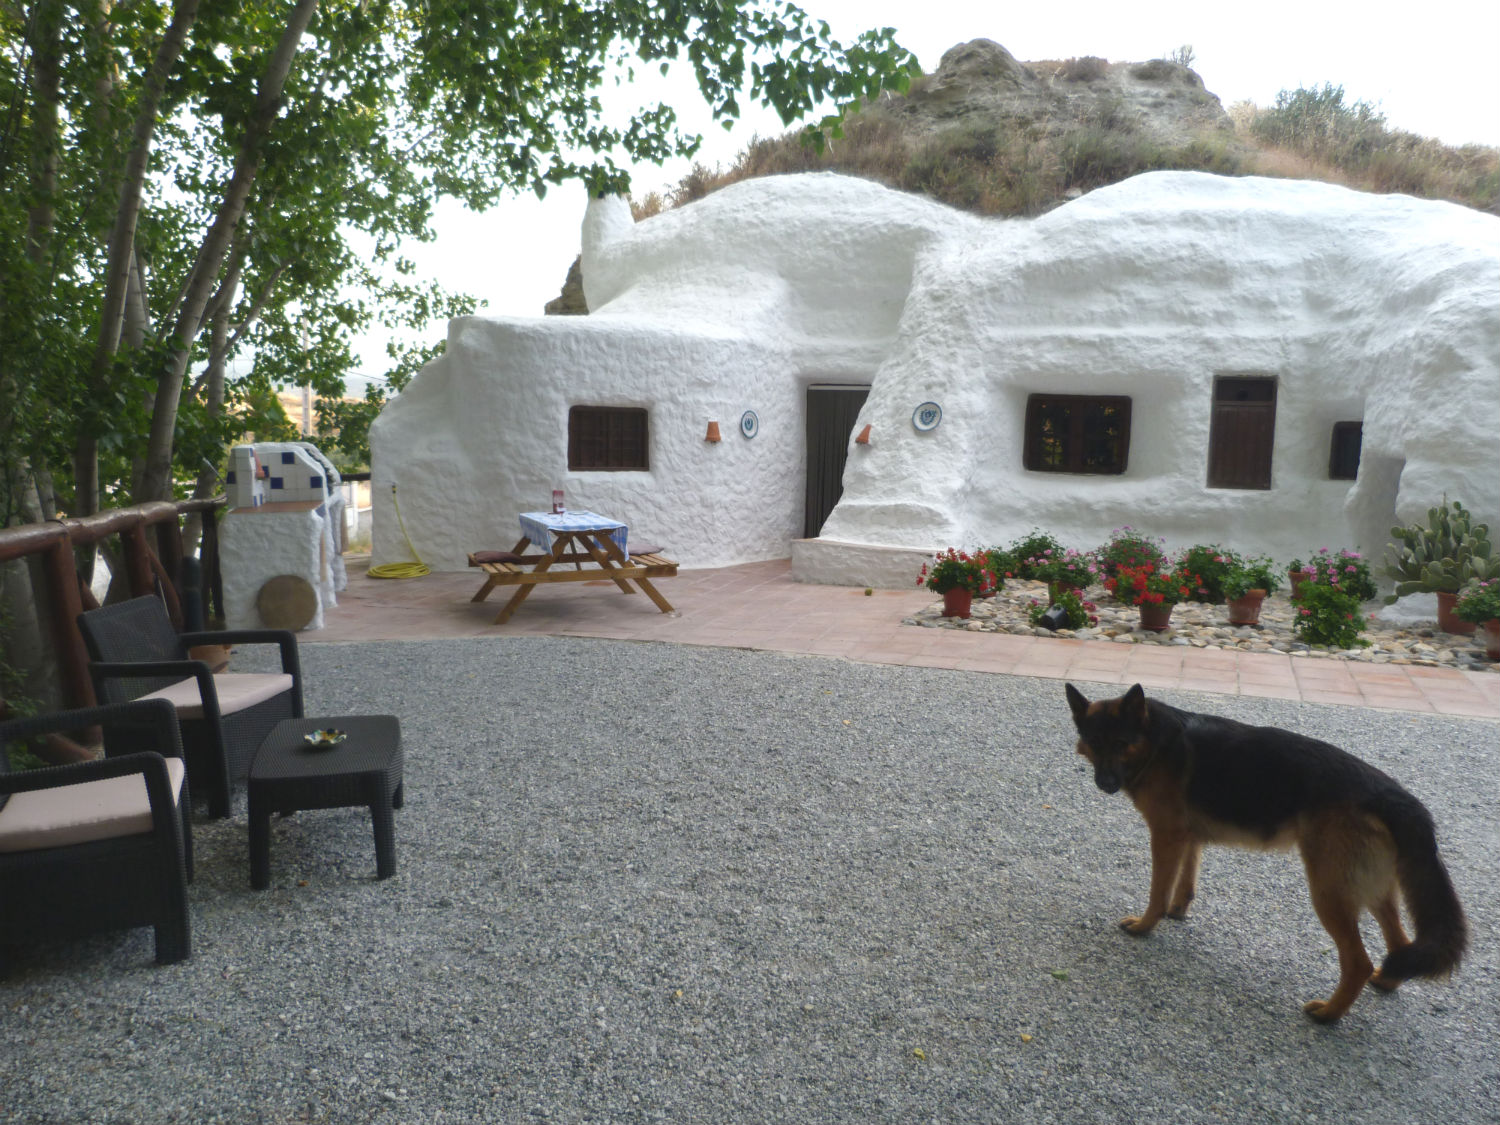 The cave hotel came with a dog.